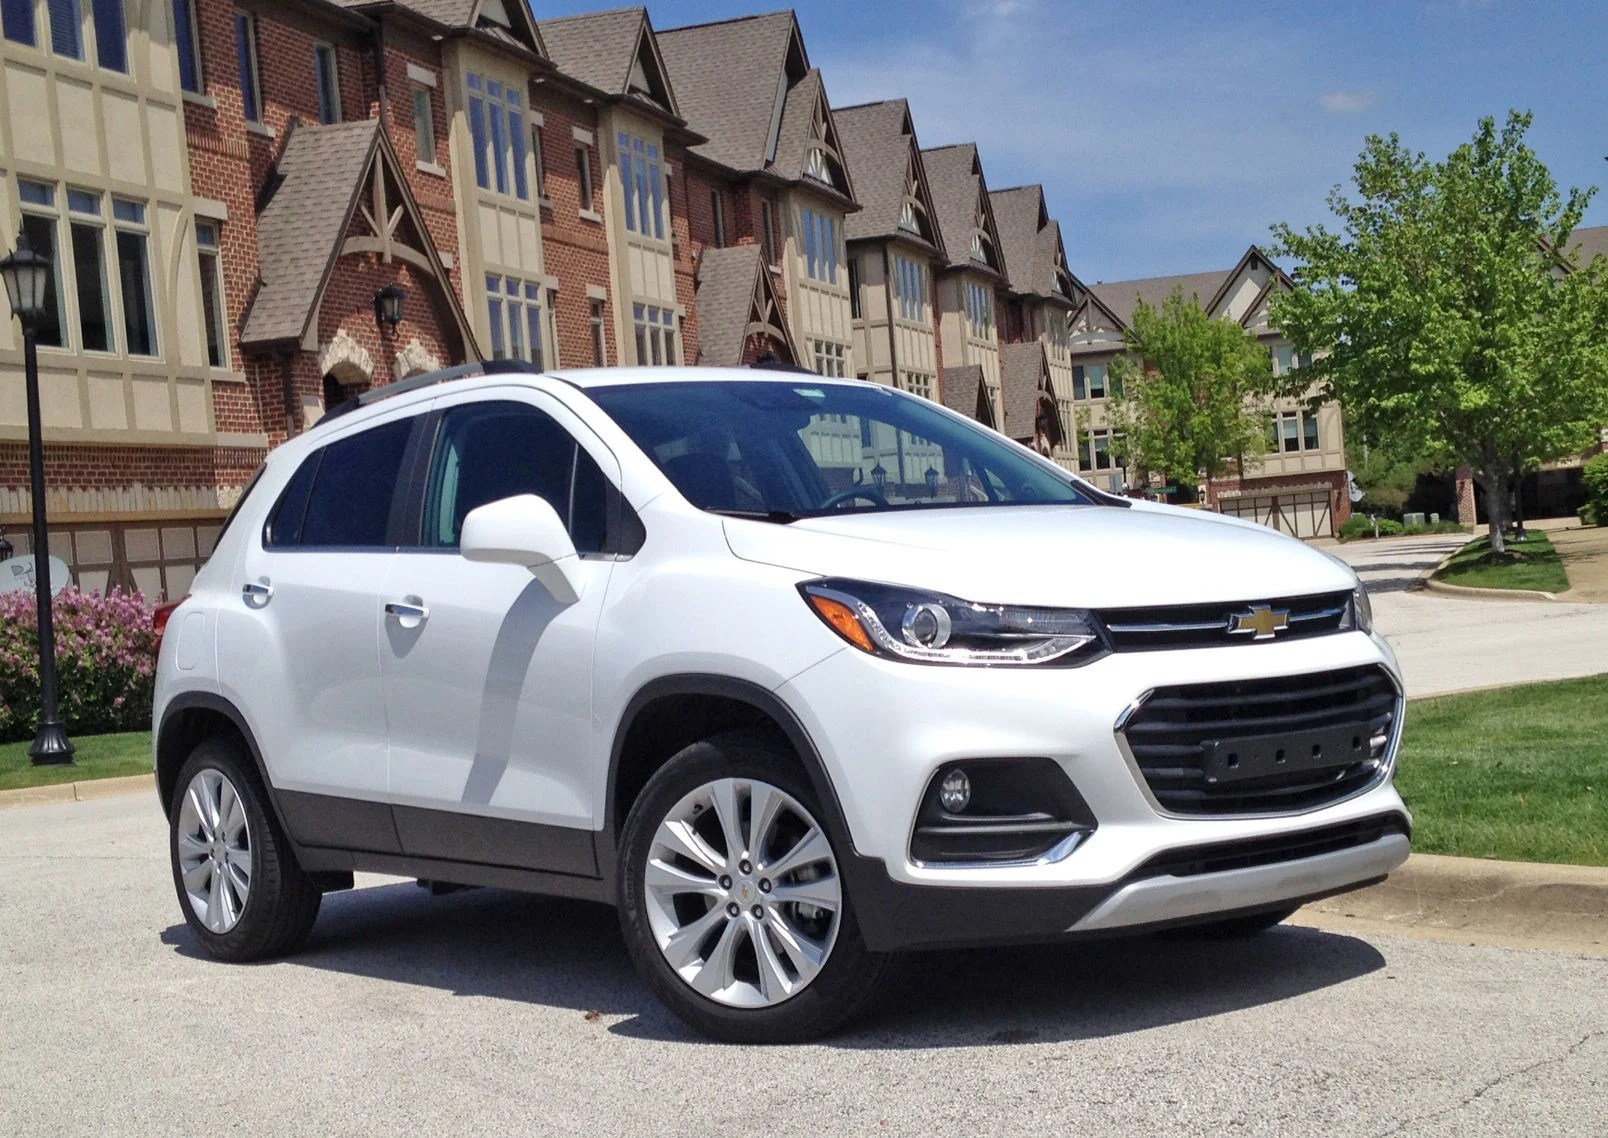 Cuv Car Chevy Trax Gains Cuv Traction Cars Nwitimes